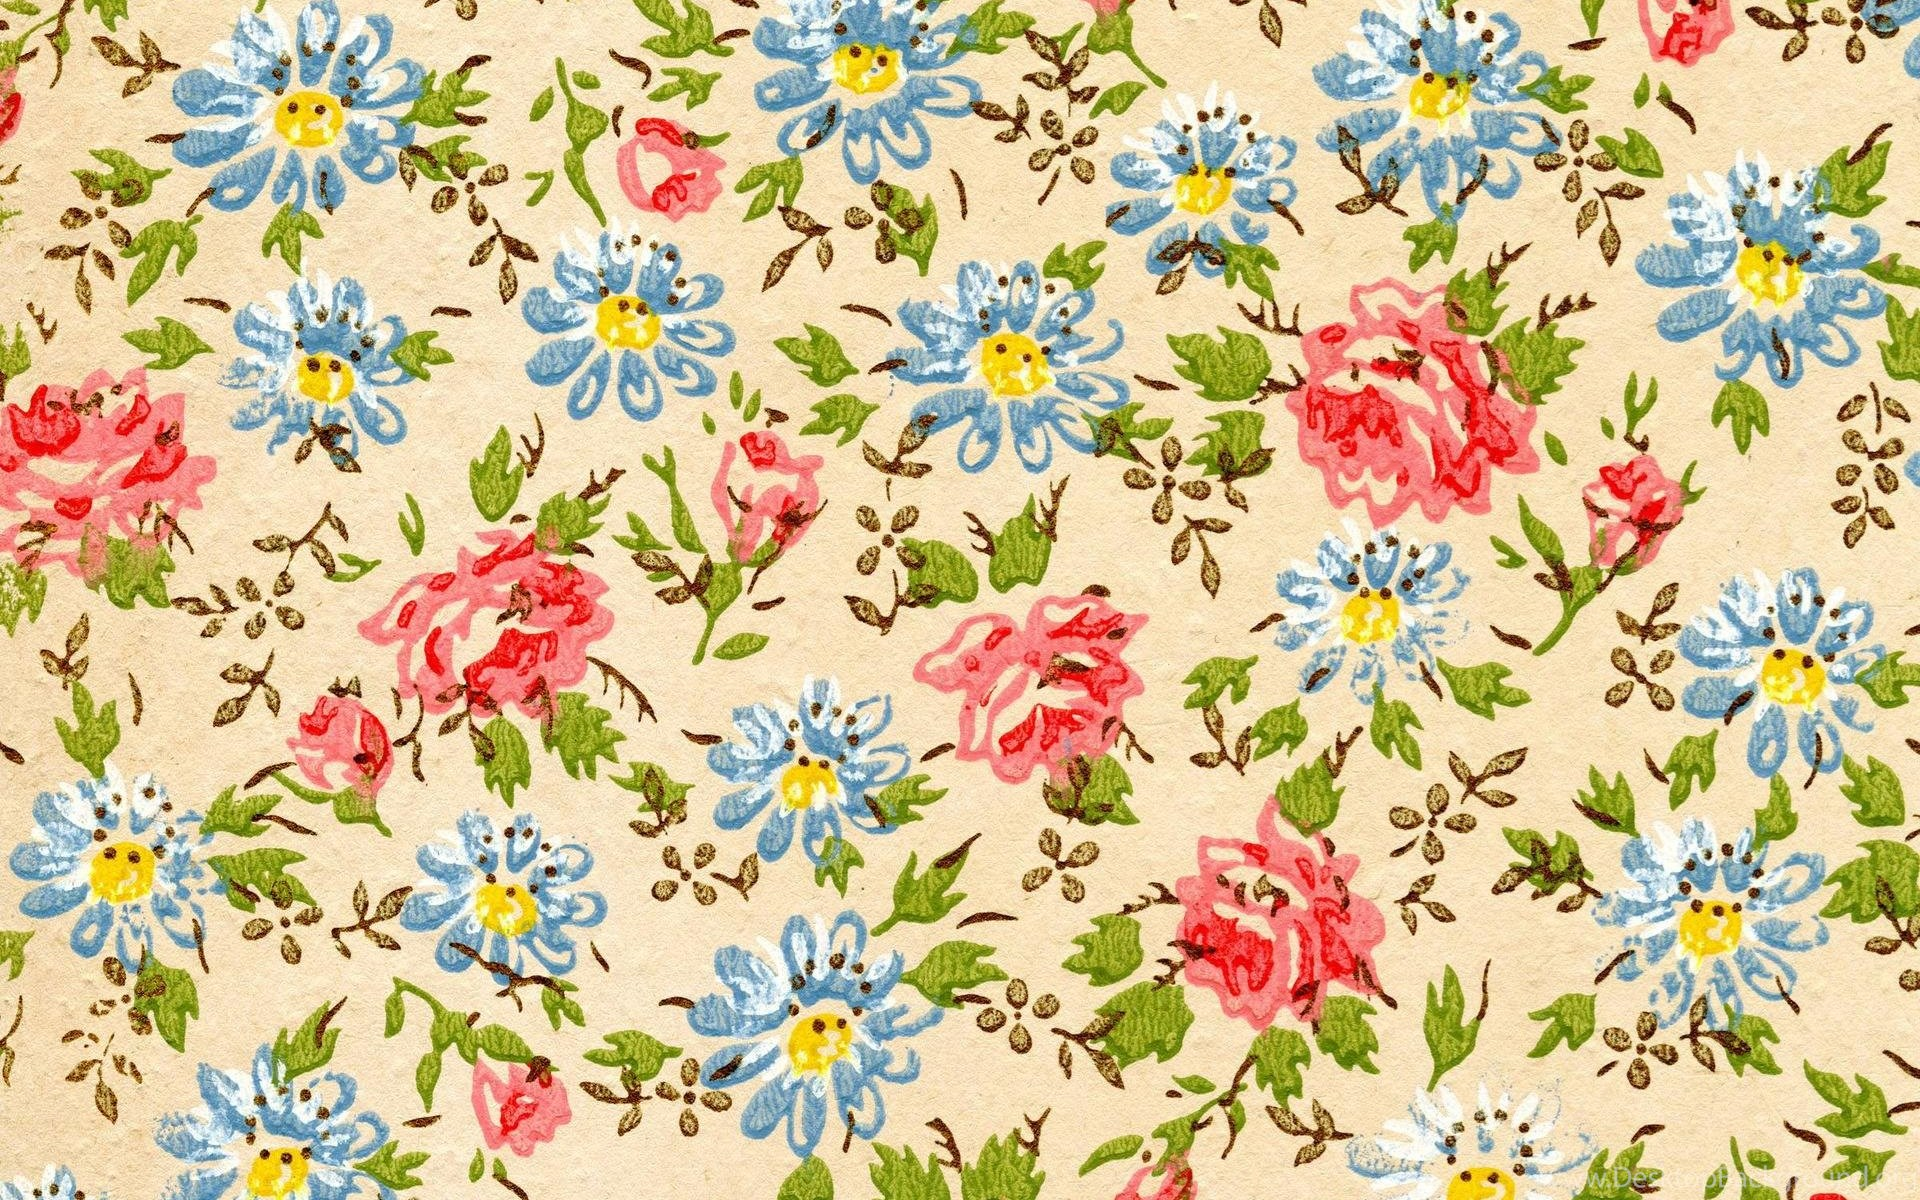 Floral Computer Wallpapers - 2048 X 2048 Flowers Pattern , HD Wallpaper & Backgrounds